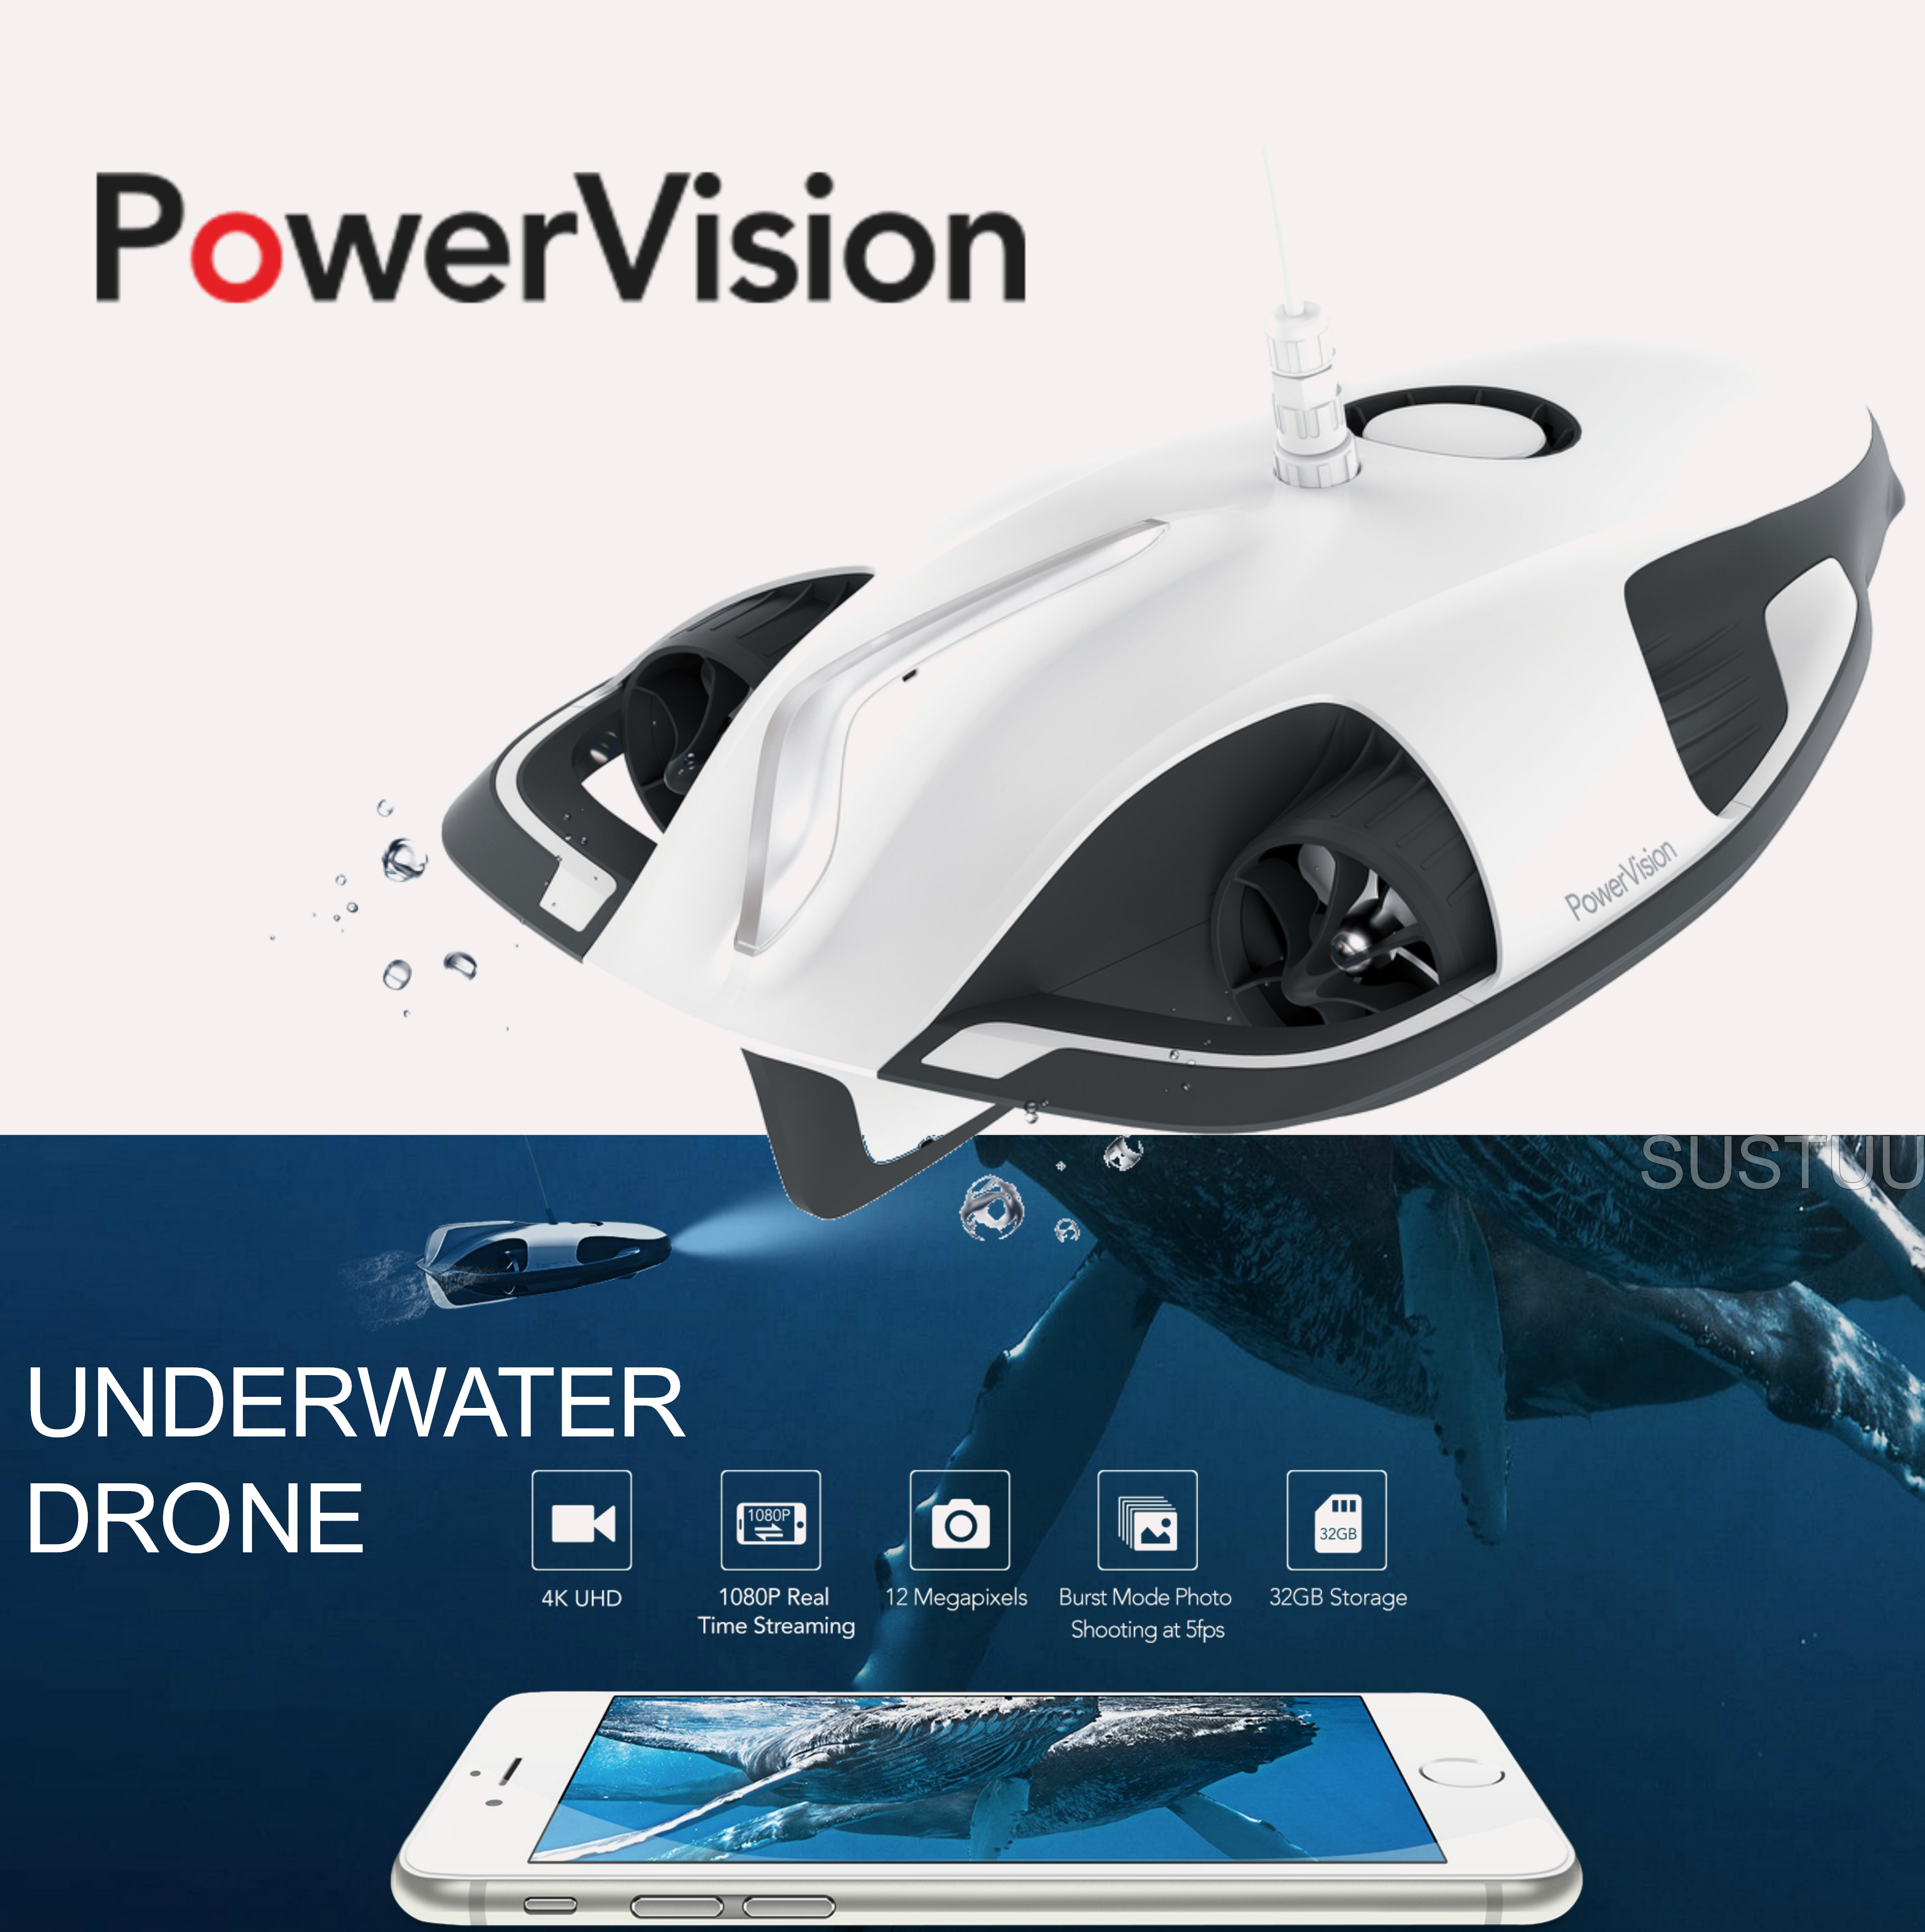 Powervision PowerRay Wizard|Underwater Robot|4K UHD Camera|5 Frame/Shoot-White